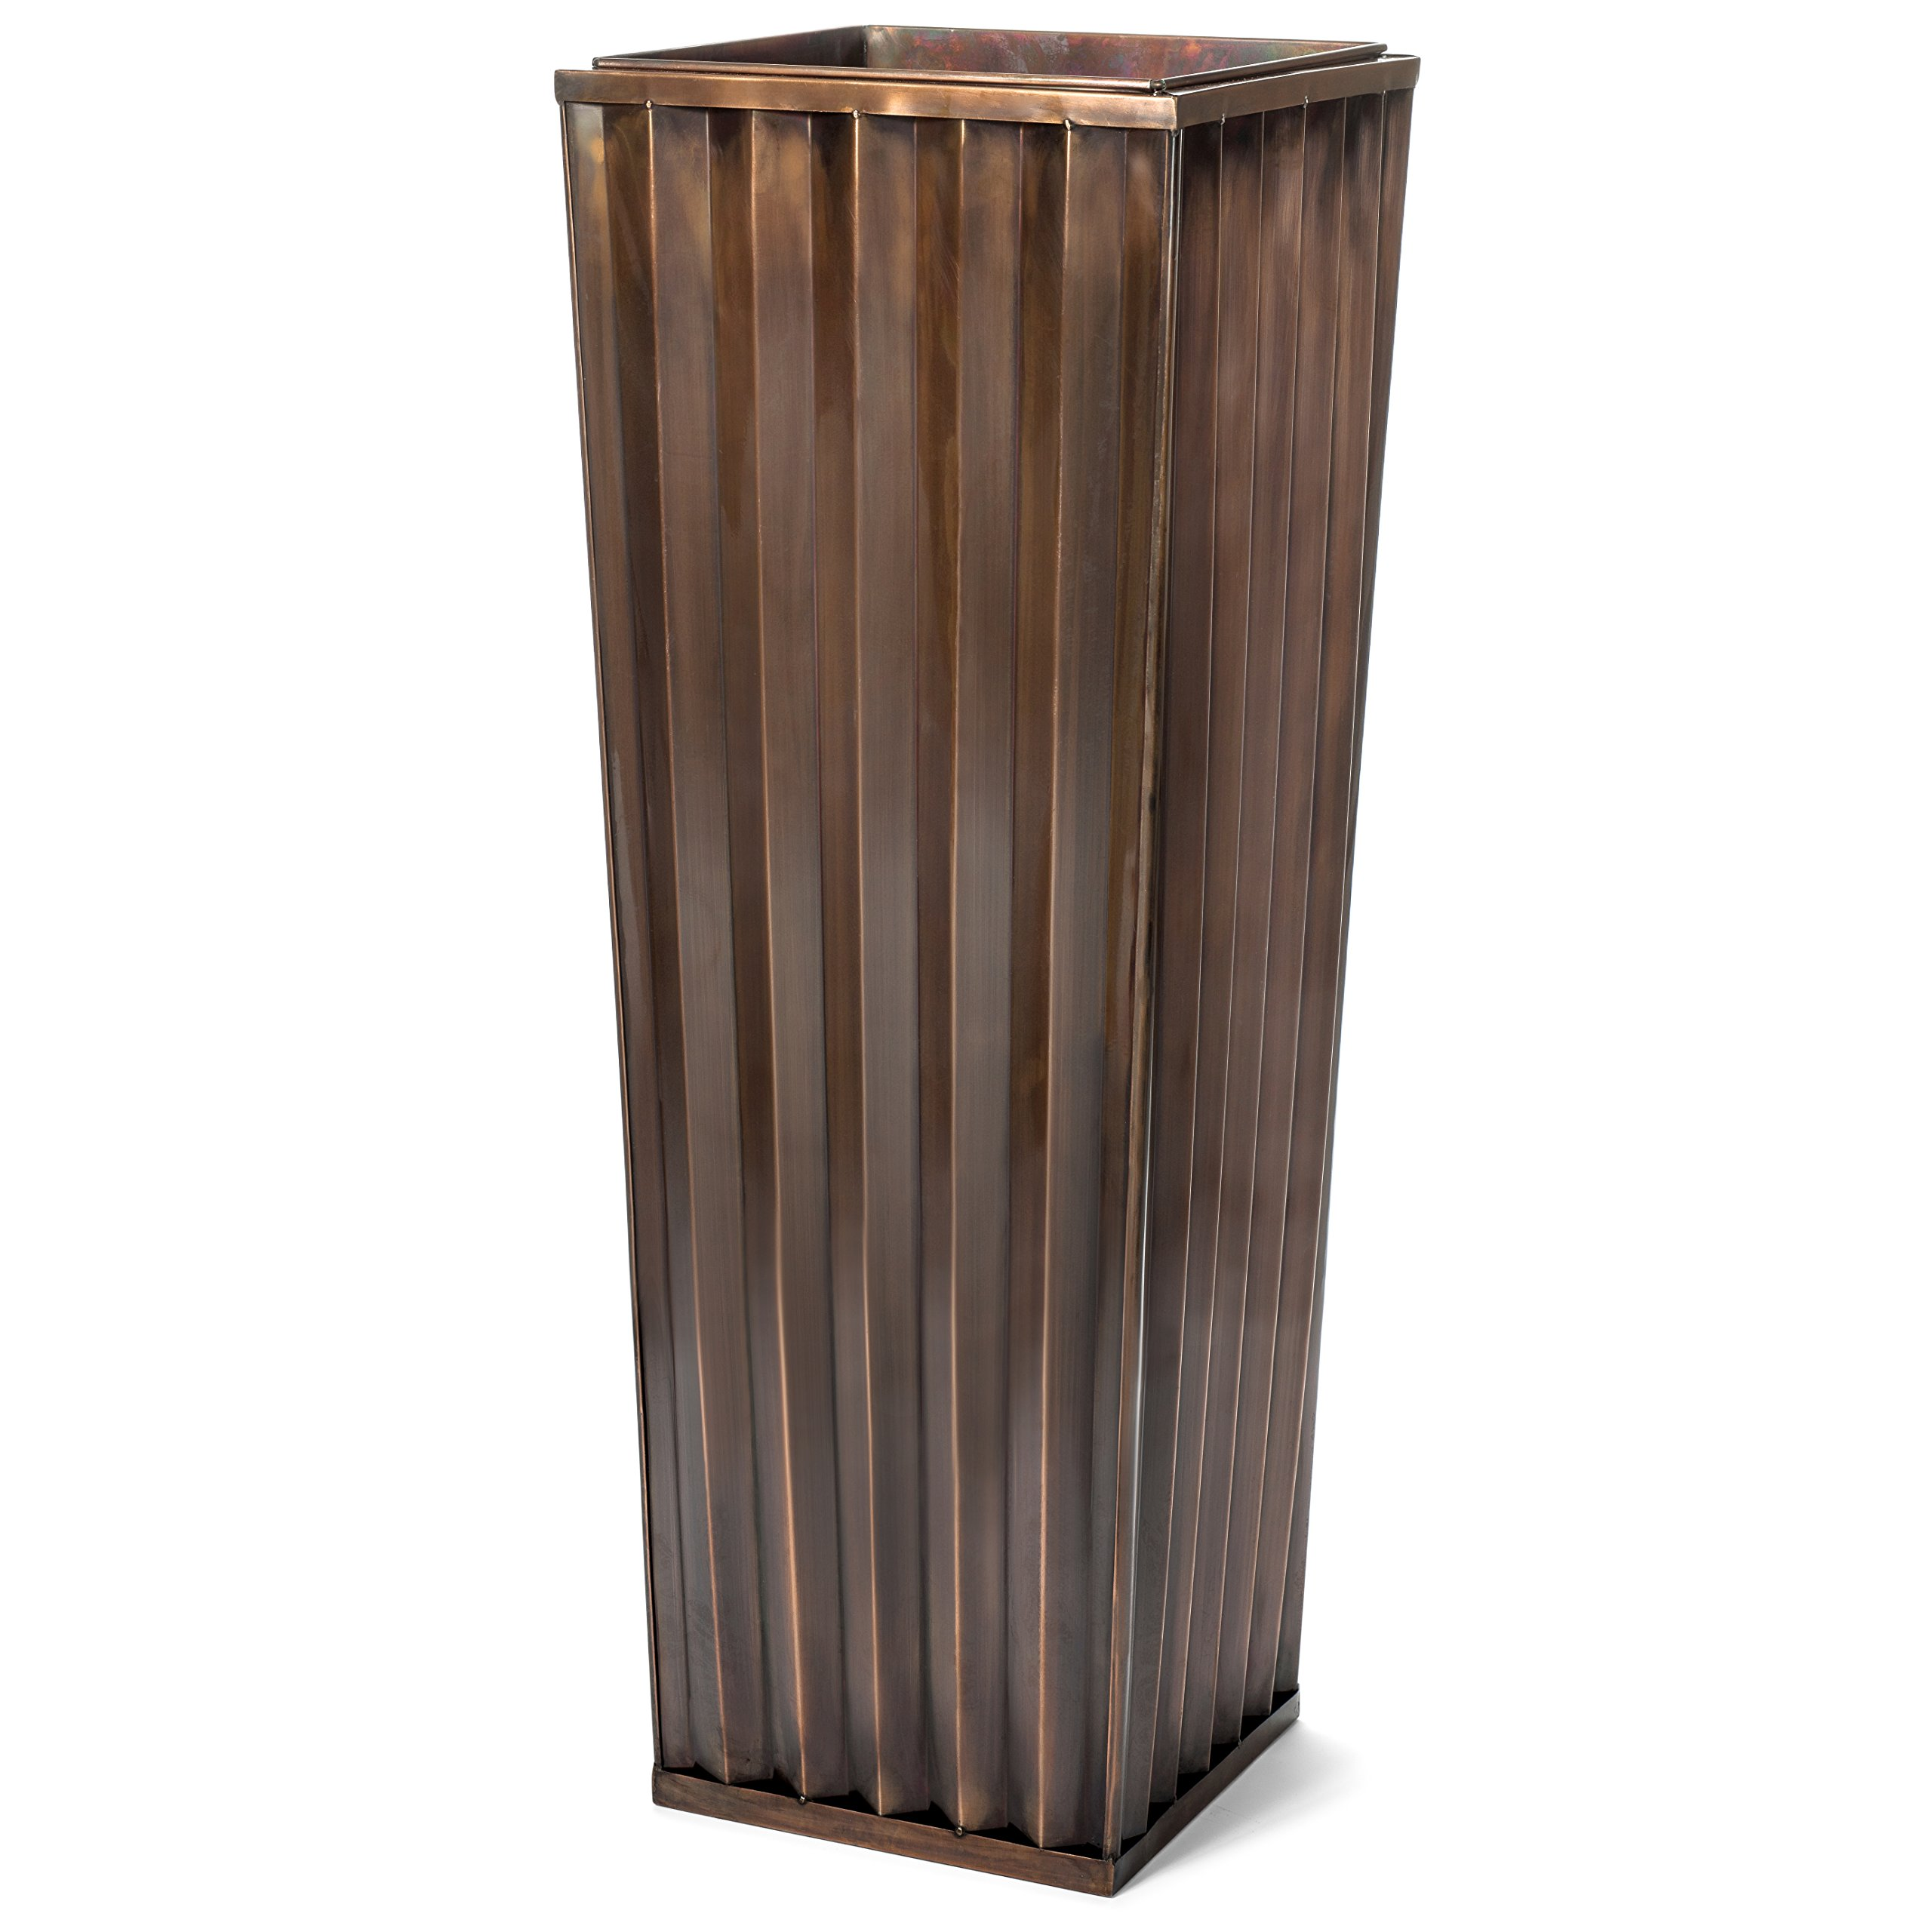 H Potter Tall Planter Large Outdoor Copper Antique Flower Pot Indoor Patio Deck Ribbed Garden 29 Inches High by H Potter